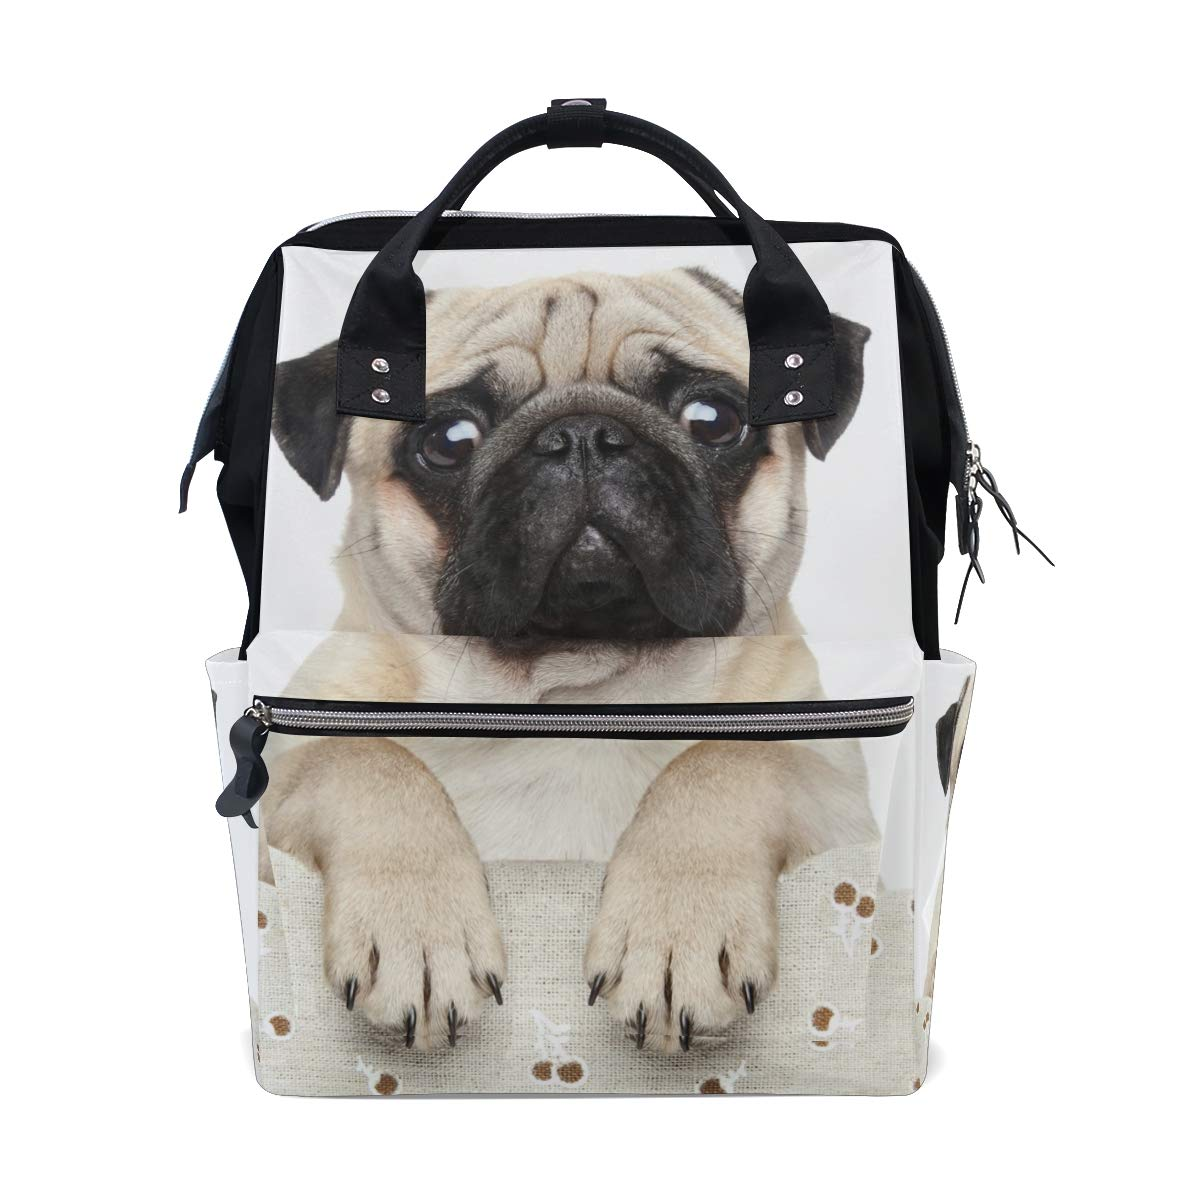 MERRYSUGAR Diaper Bag Backpack Travel Bag Large Multifunction Waterproof Animal White Puppy Dog Pug Stylish and Durable Nappy Bag for Baby Care School Backpack